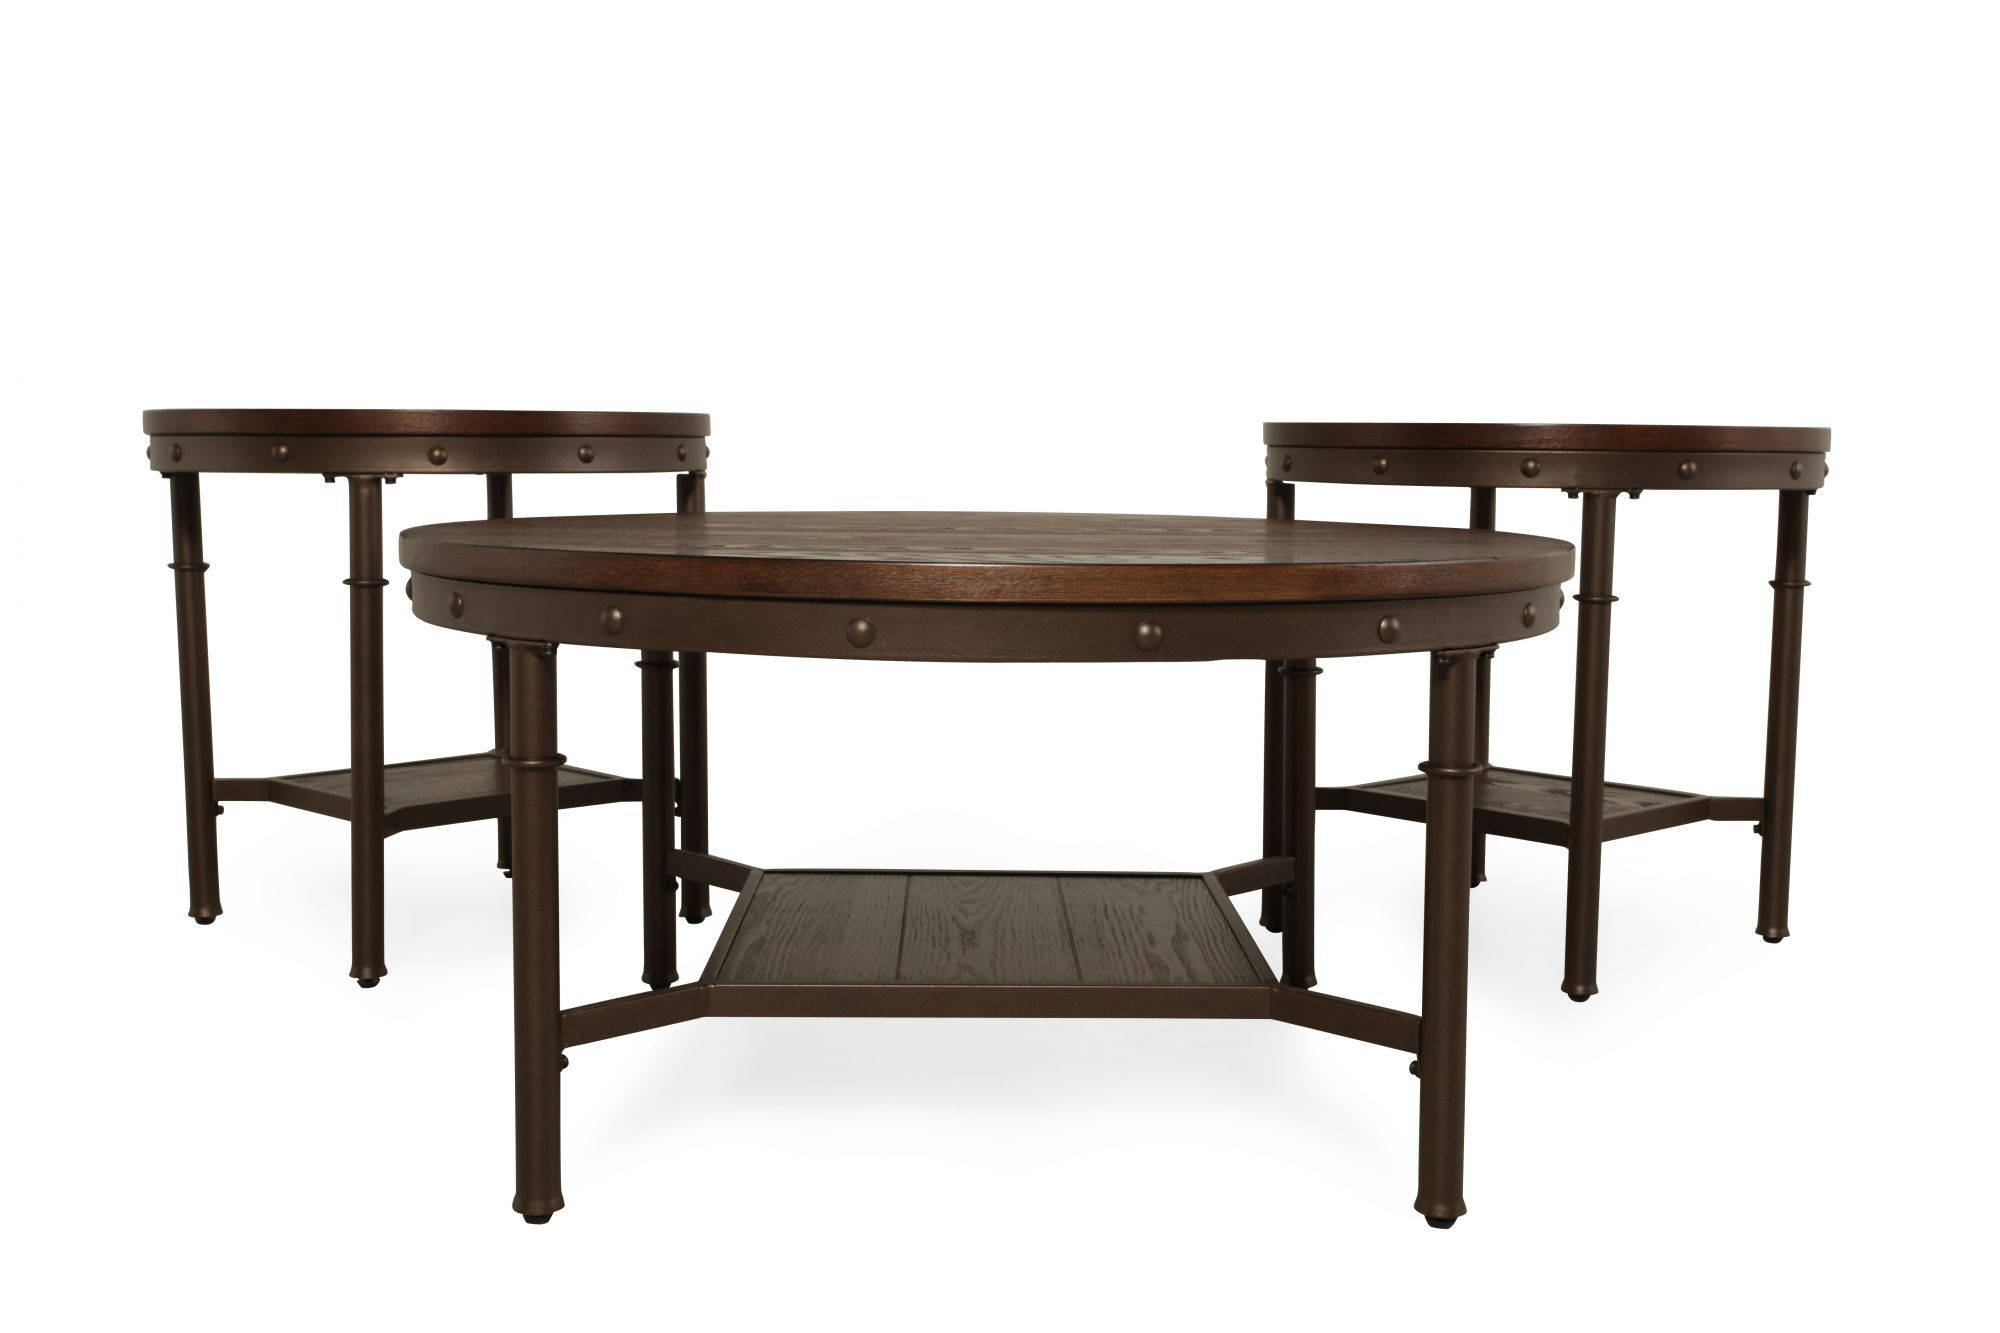 Three Piece Rivet Accented Casual Coffee Table Set In Brown